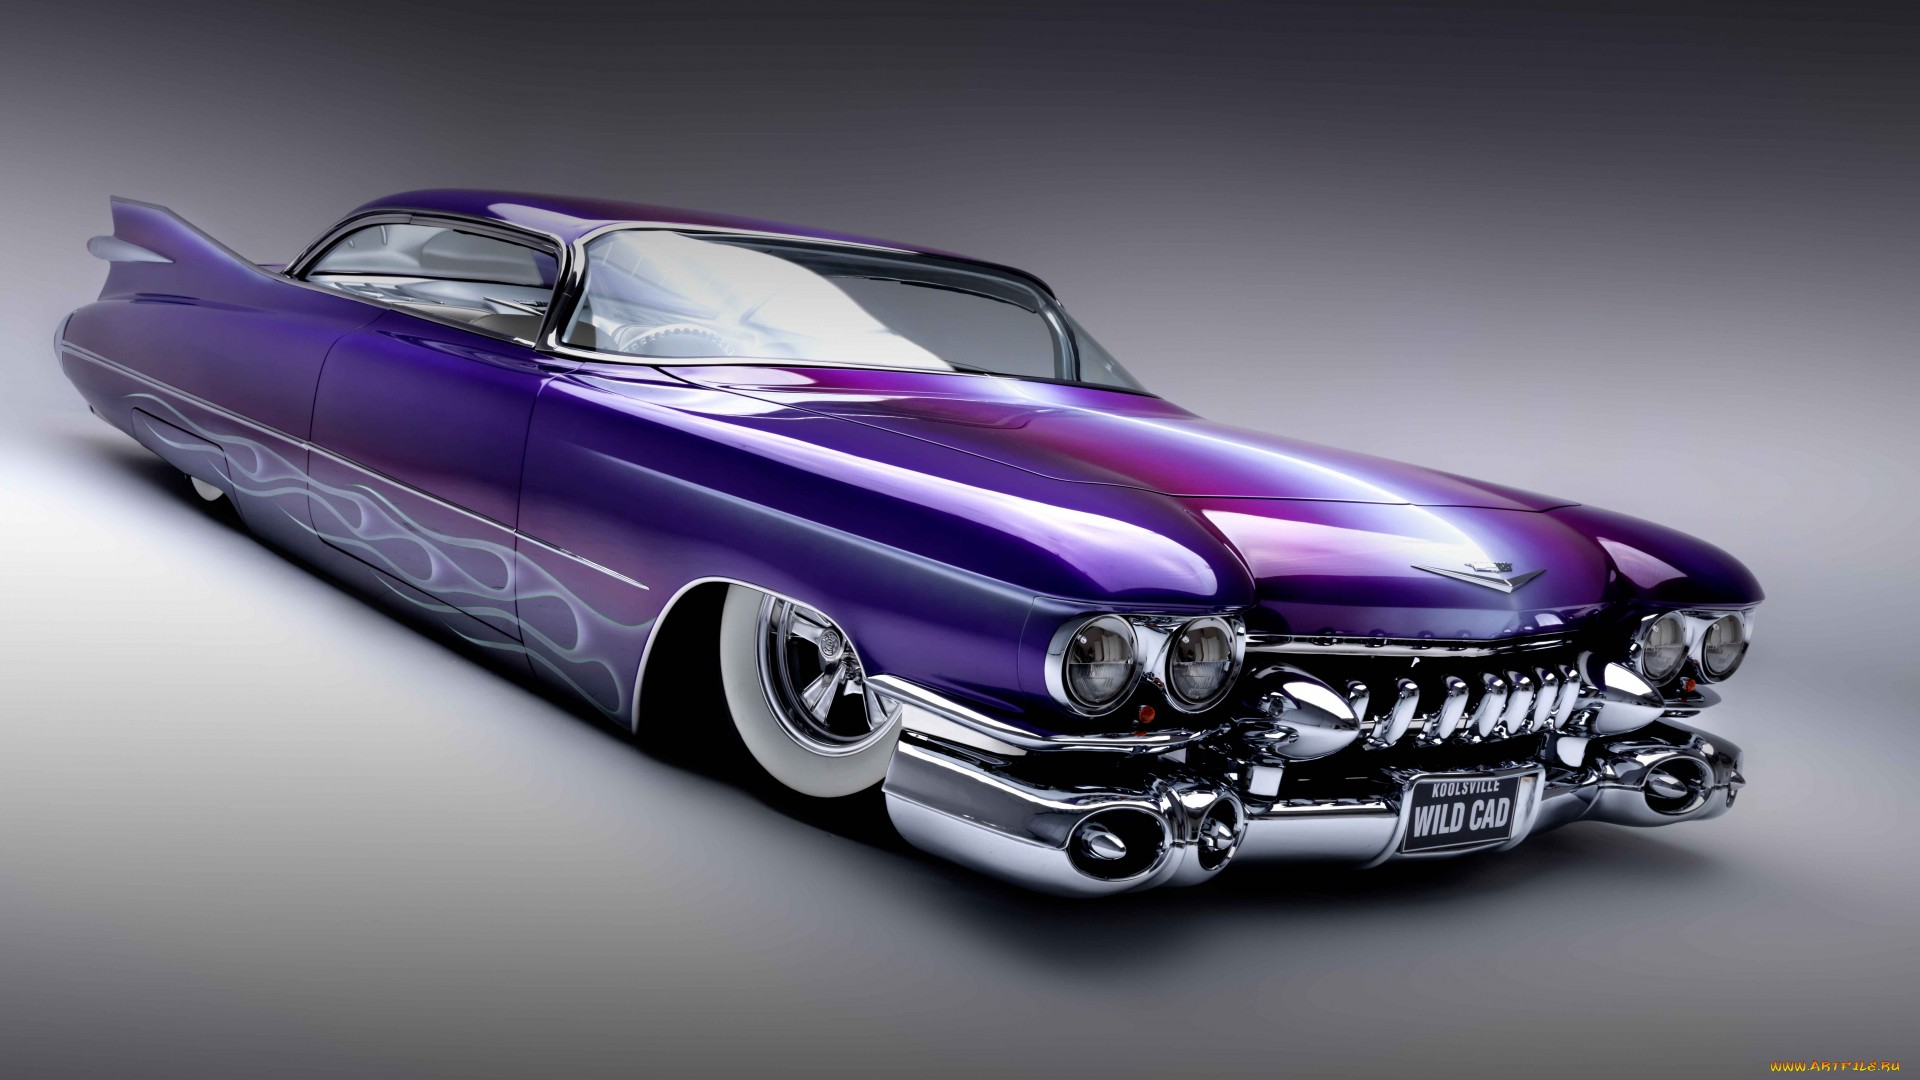 Free Lowrider Wallpapers  Wallpaper  1920x1080